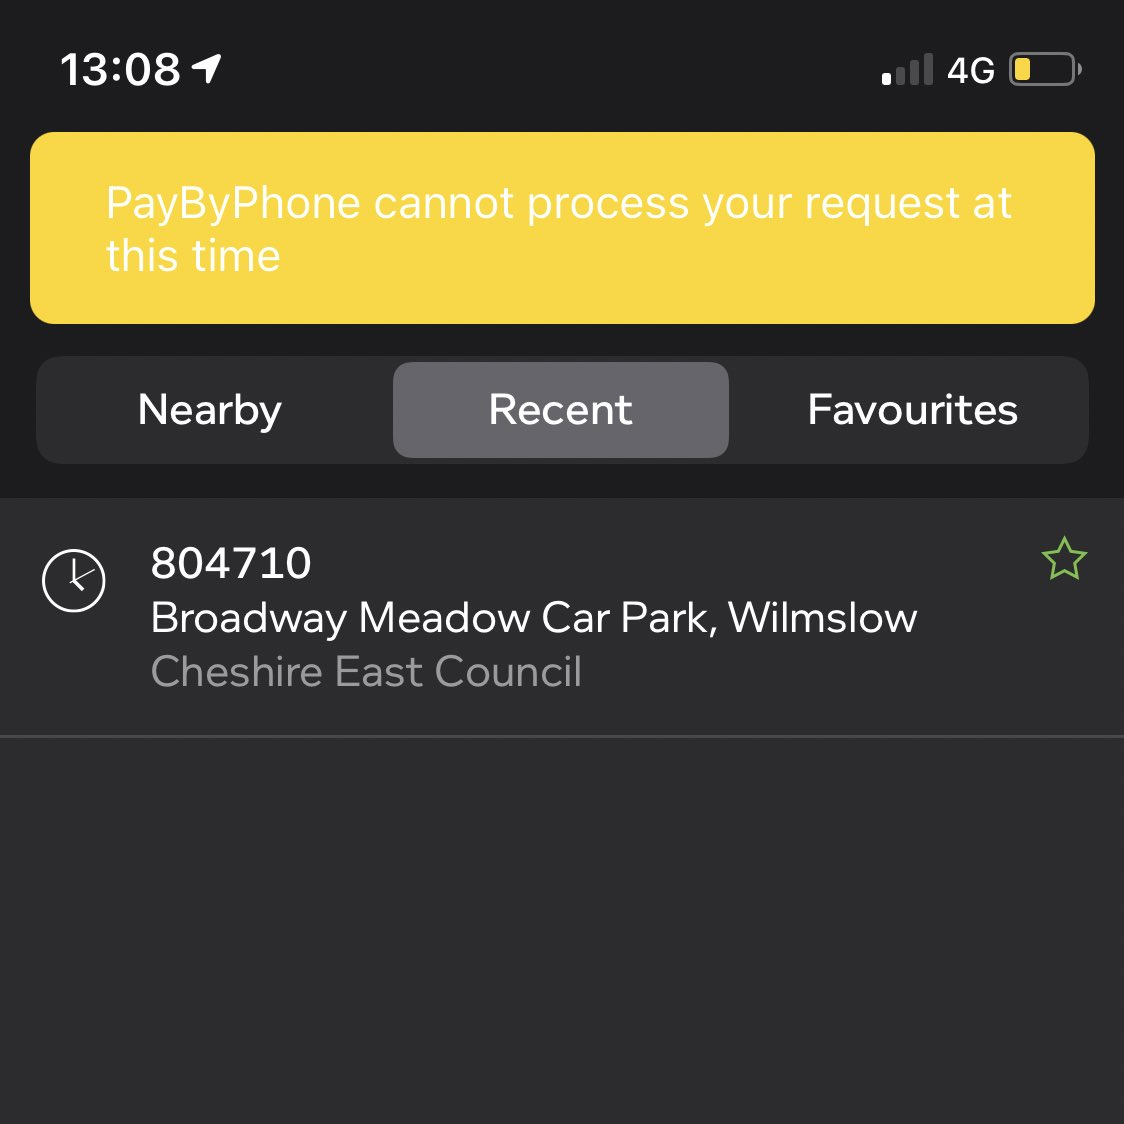 Heads up @CheshireEast & @PayByPhone_UK - site 804710 is not working on the app. Any help much appreciated - as only have app to pay for parking!  #Wilmslow #CheshireEast #Parking #PayByPhone #TechIssues https://t.co/uAeKRNZc3n